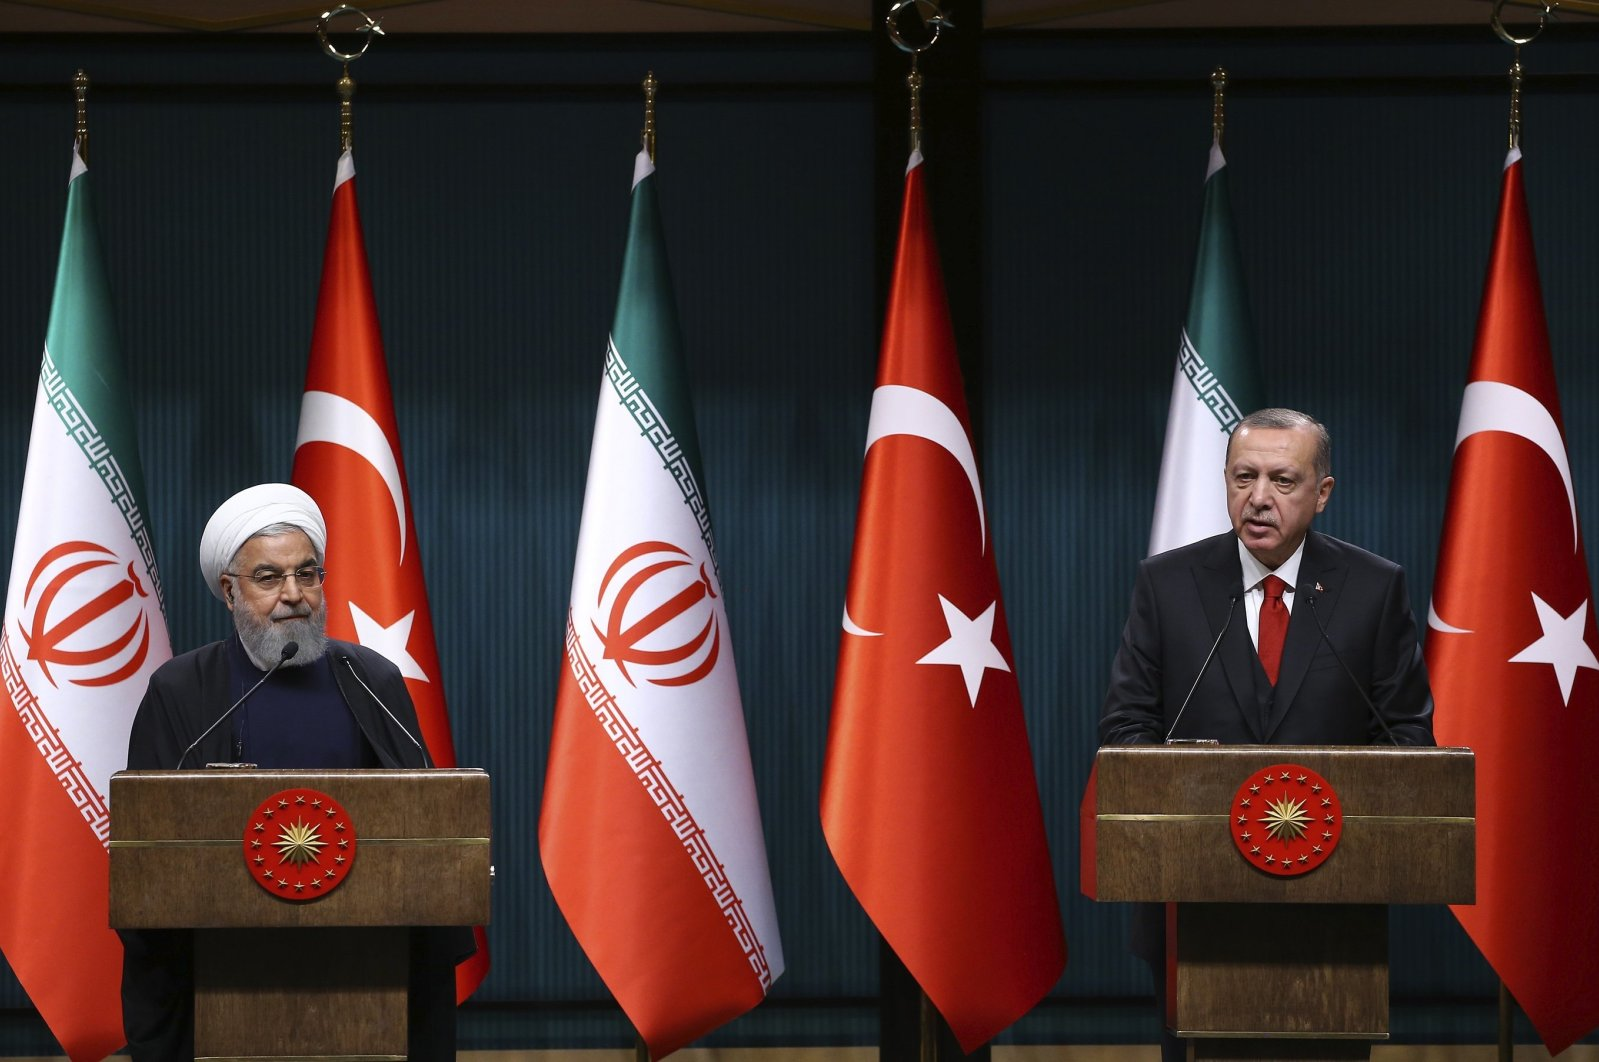 President Recep Tayyip Erdoğan (R) and his Iranian counterpart Hassan Rouhani hold a joint press conference in capital Ankara, Turkey, Dec.21, 2018. (AA)